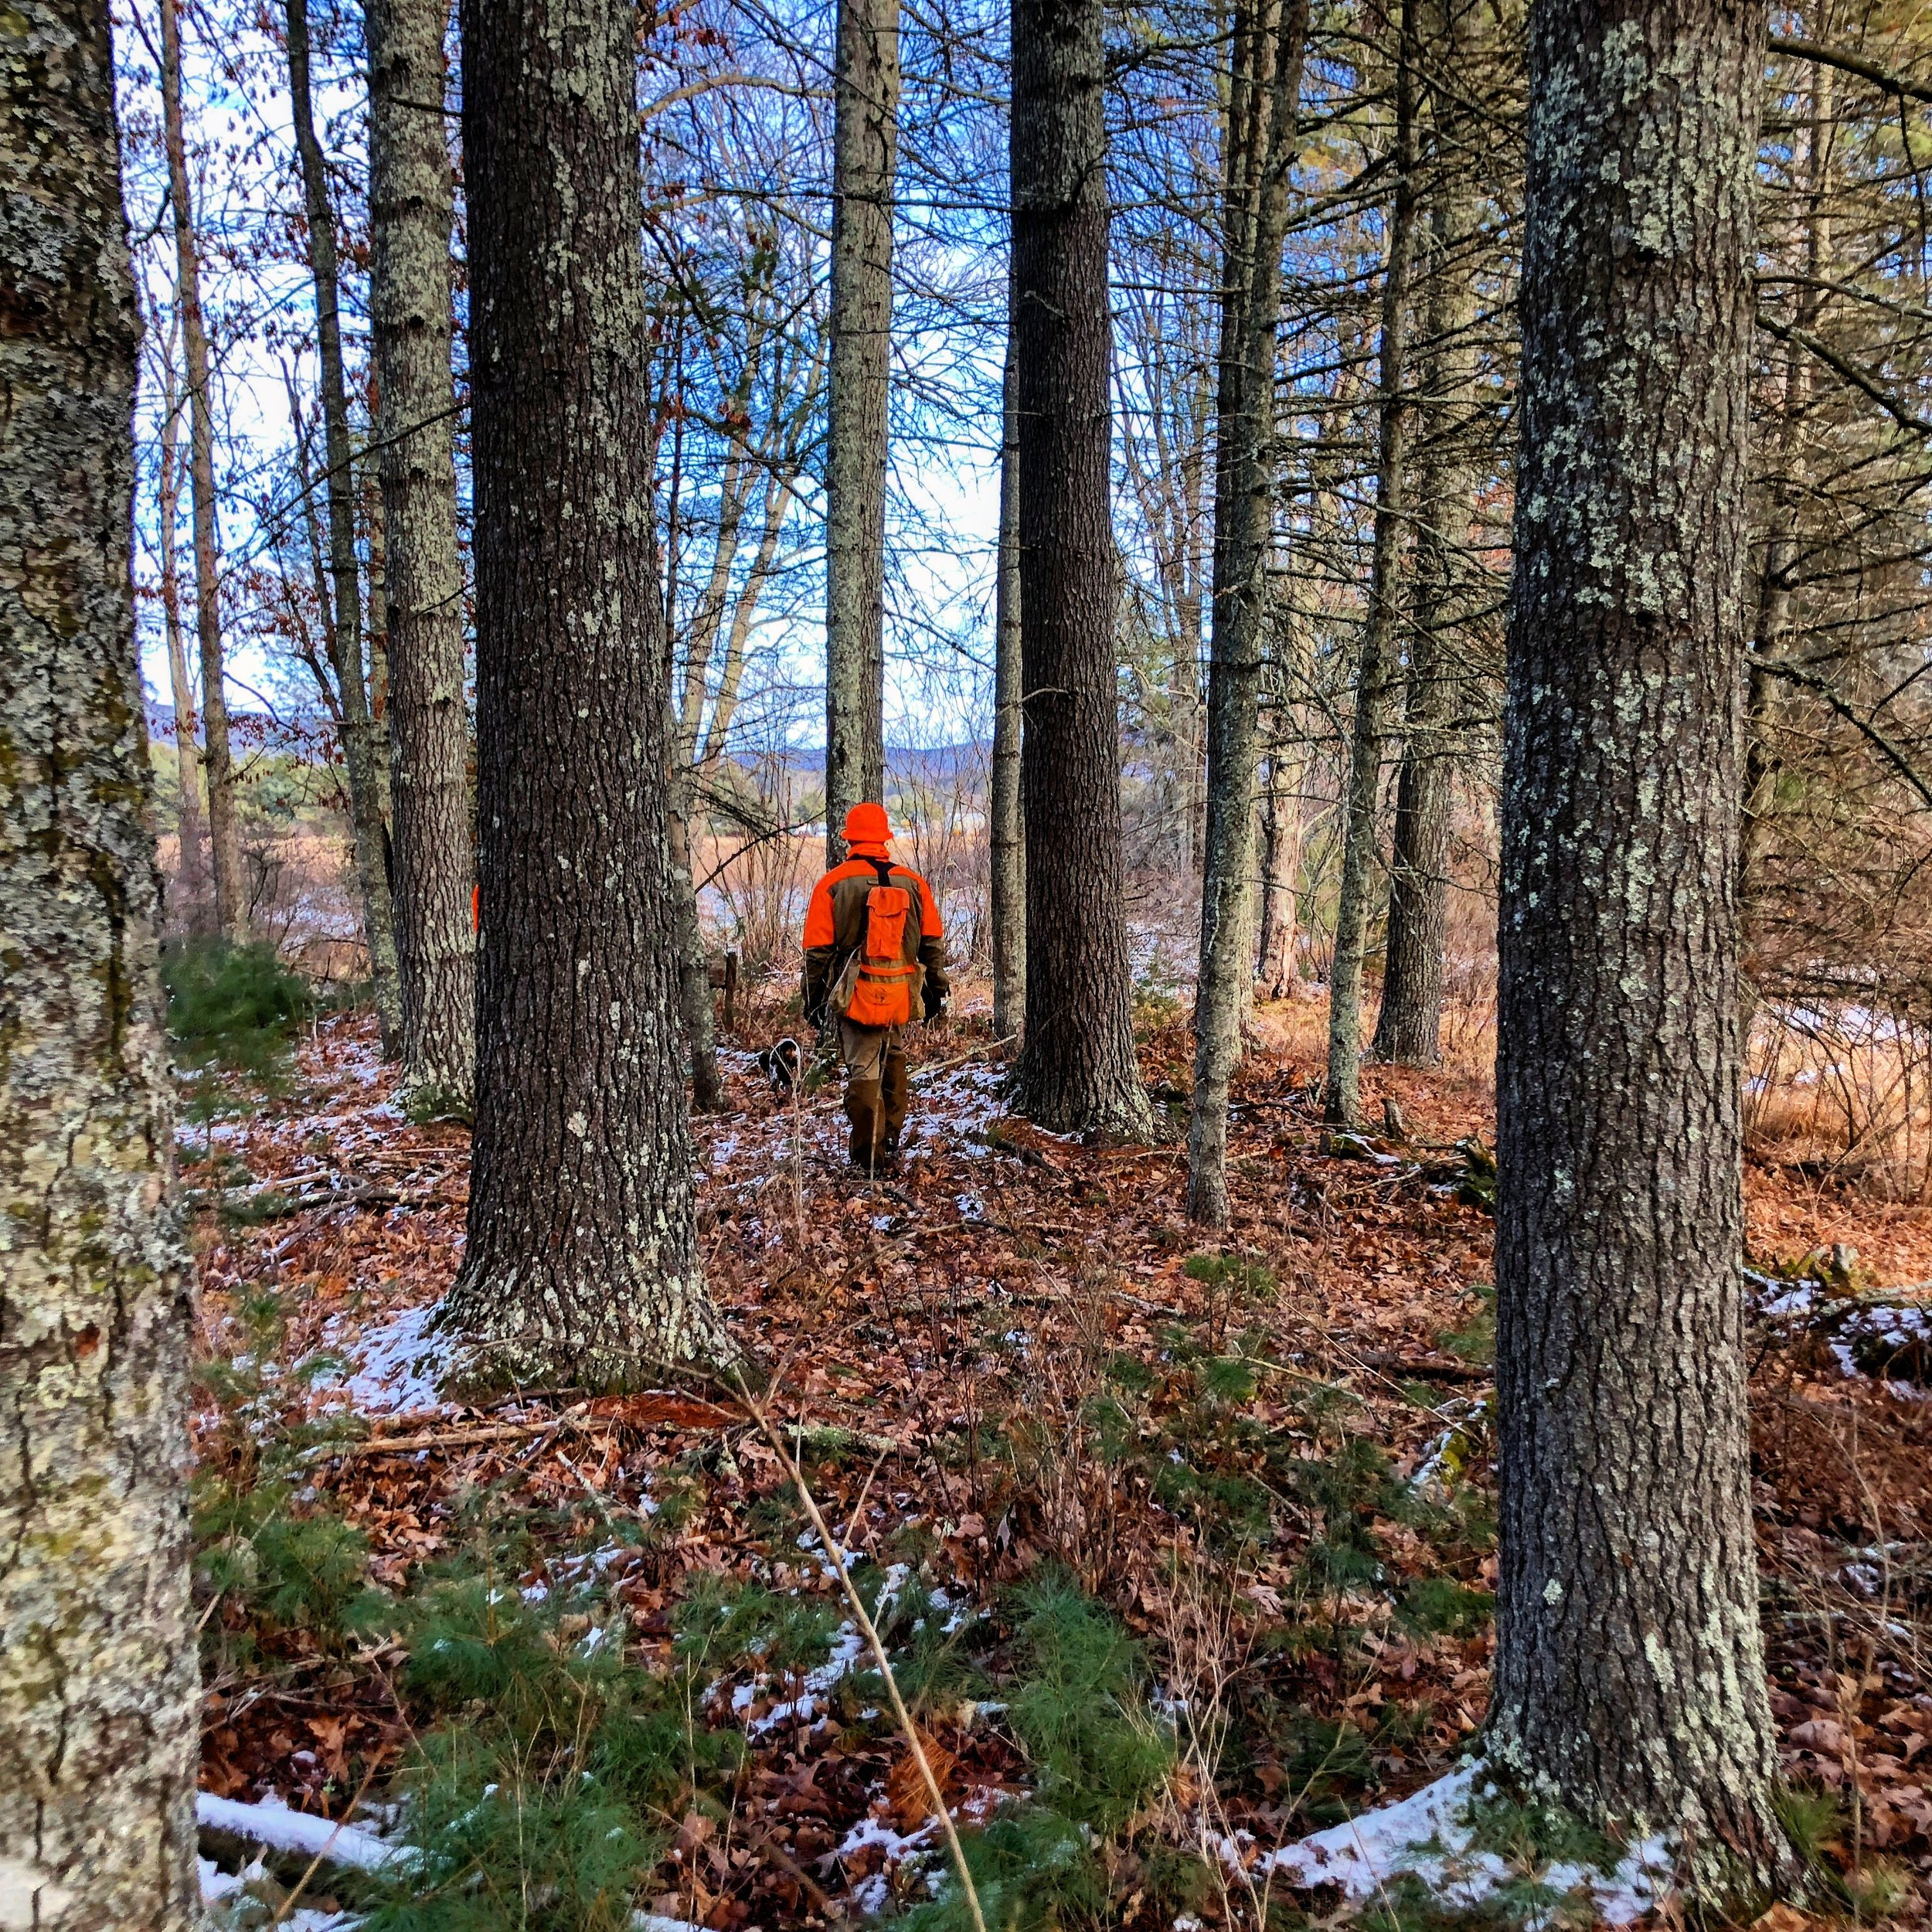 Chip on the low elevation hunt